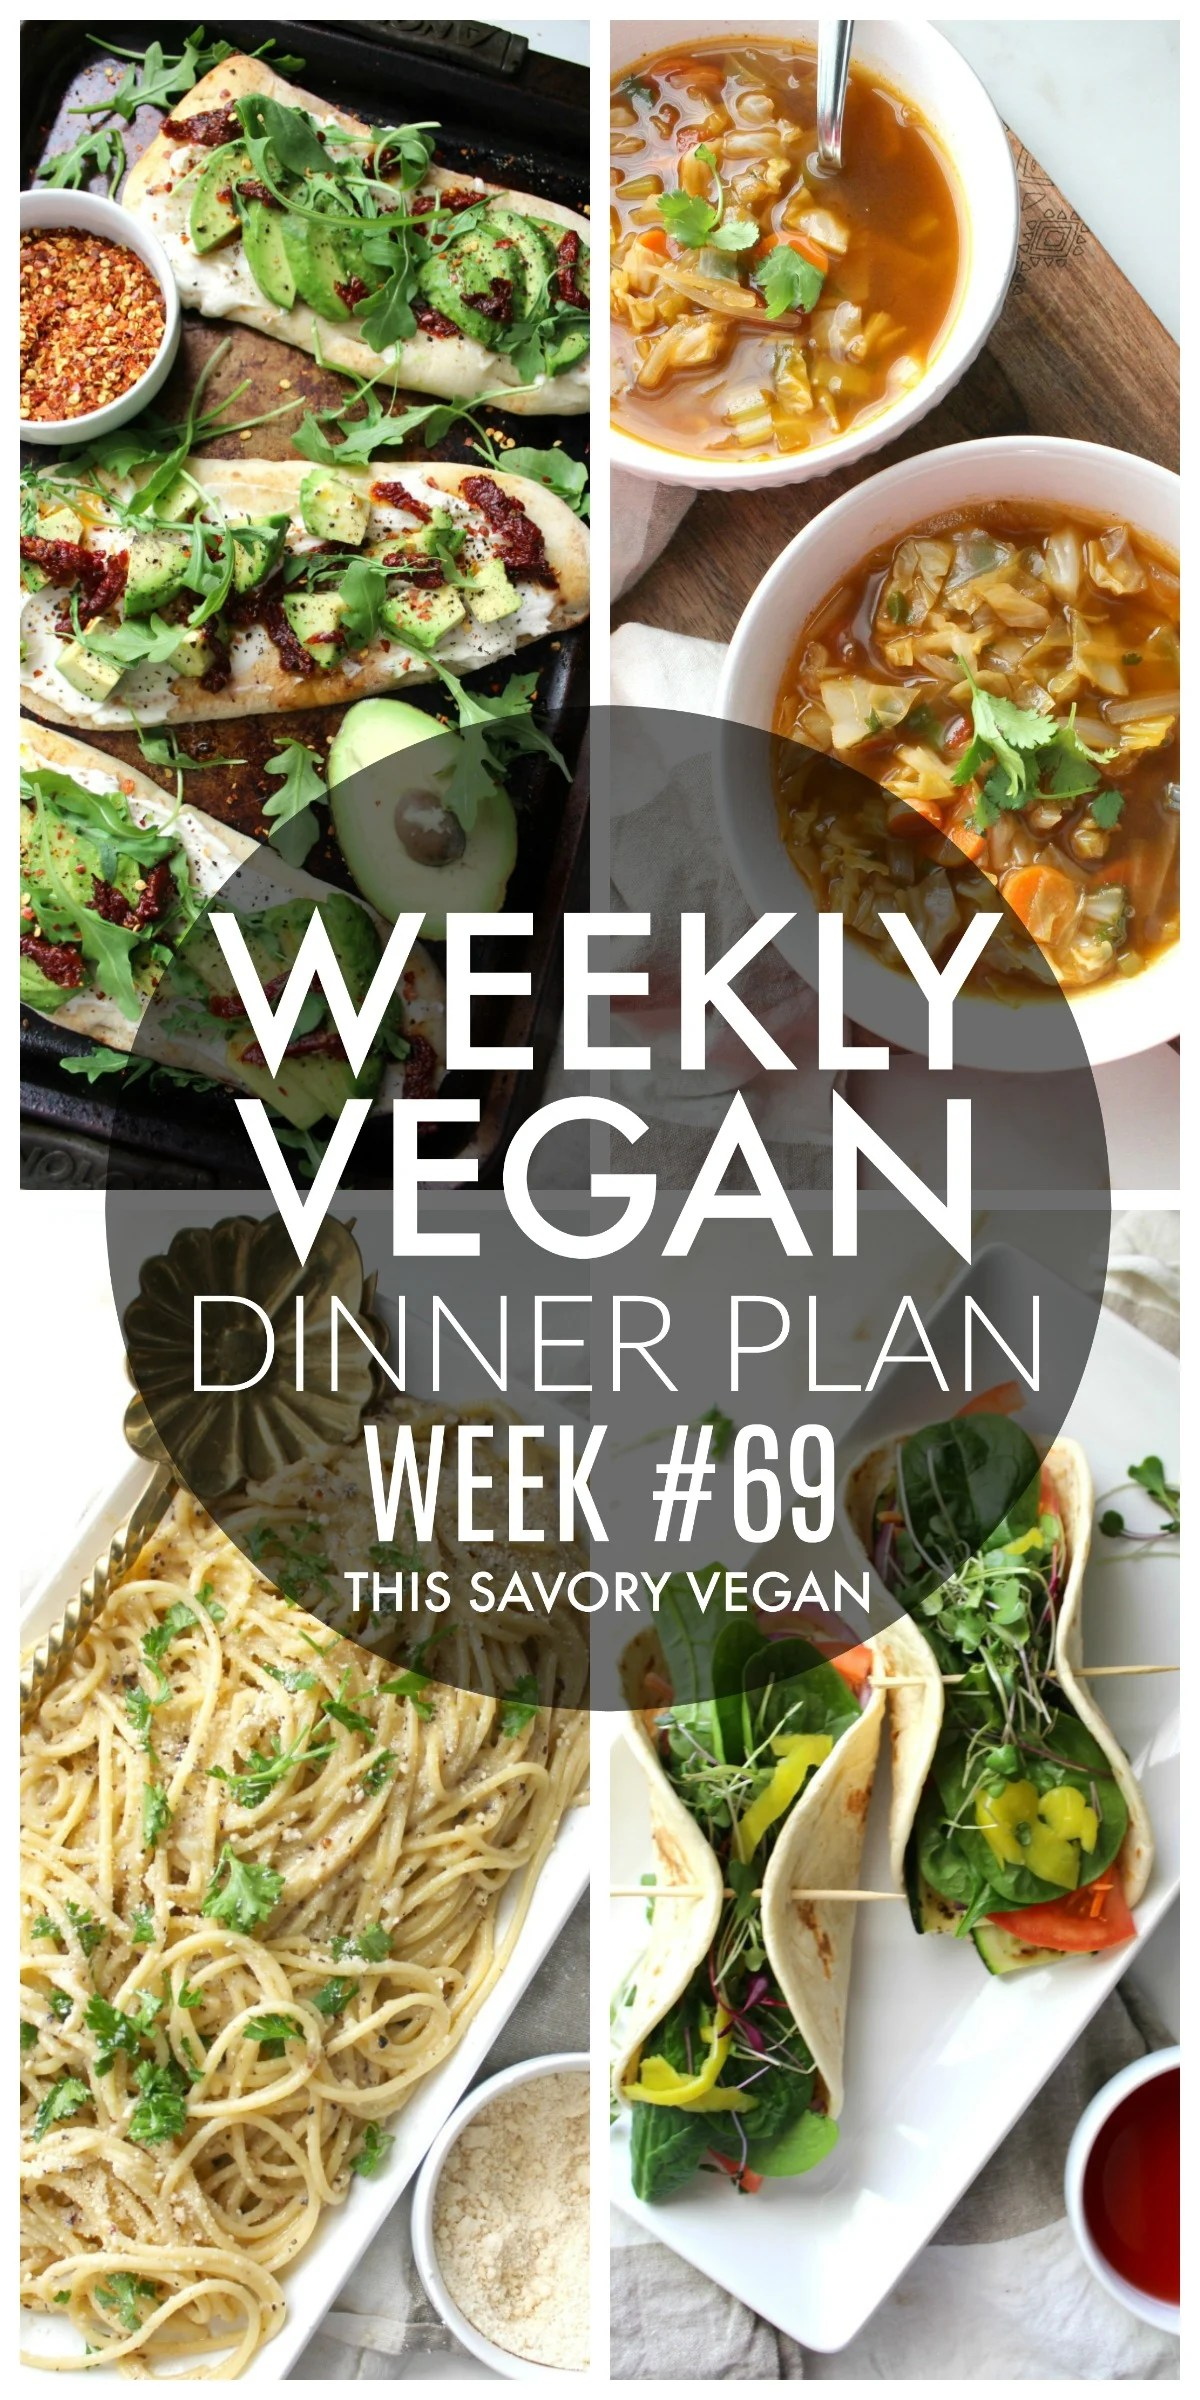 Weekly Vegan Dinner Plan #69 - five nights worth of vegan dinners to help inspire your menu. Choose one recipe to add to your rotation or make them all - shopping list included | ThisSavoryVegan.com #thissavoryvegan #mealprep #dinnerplan